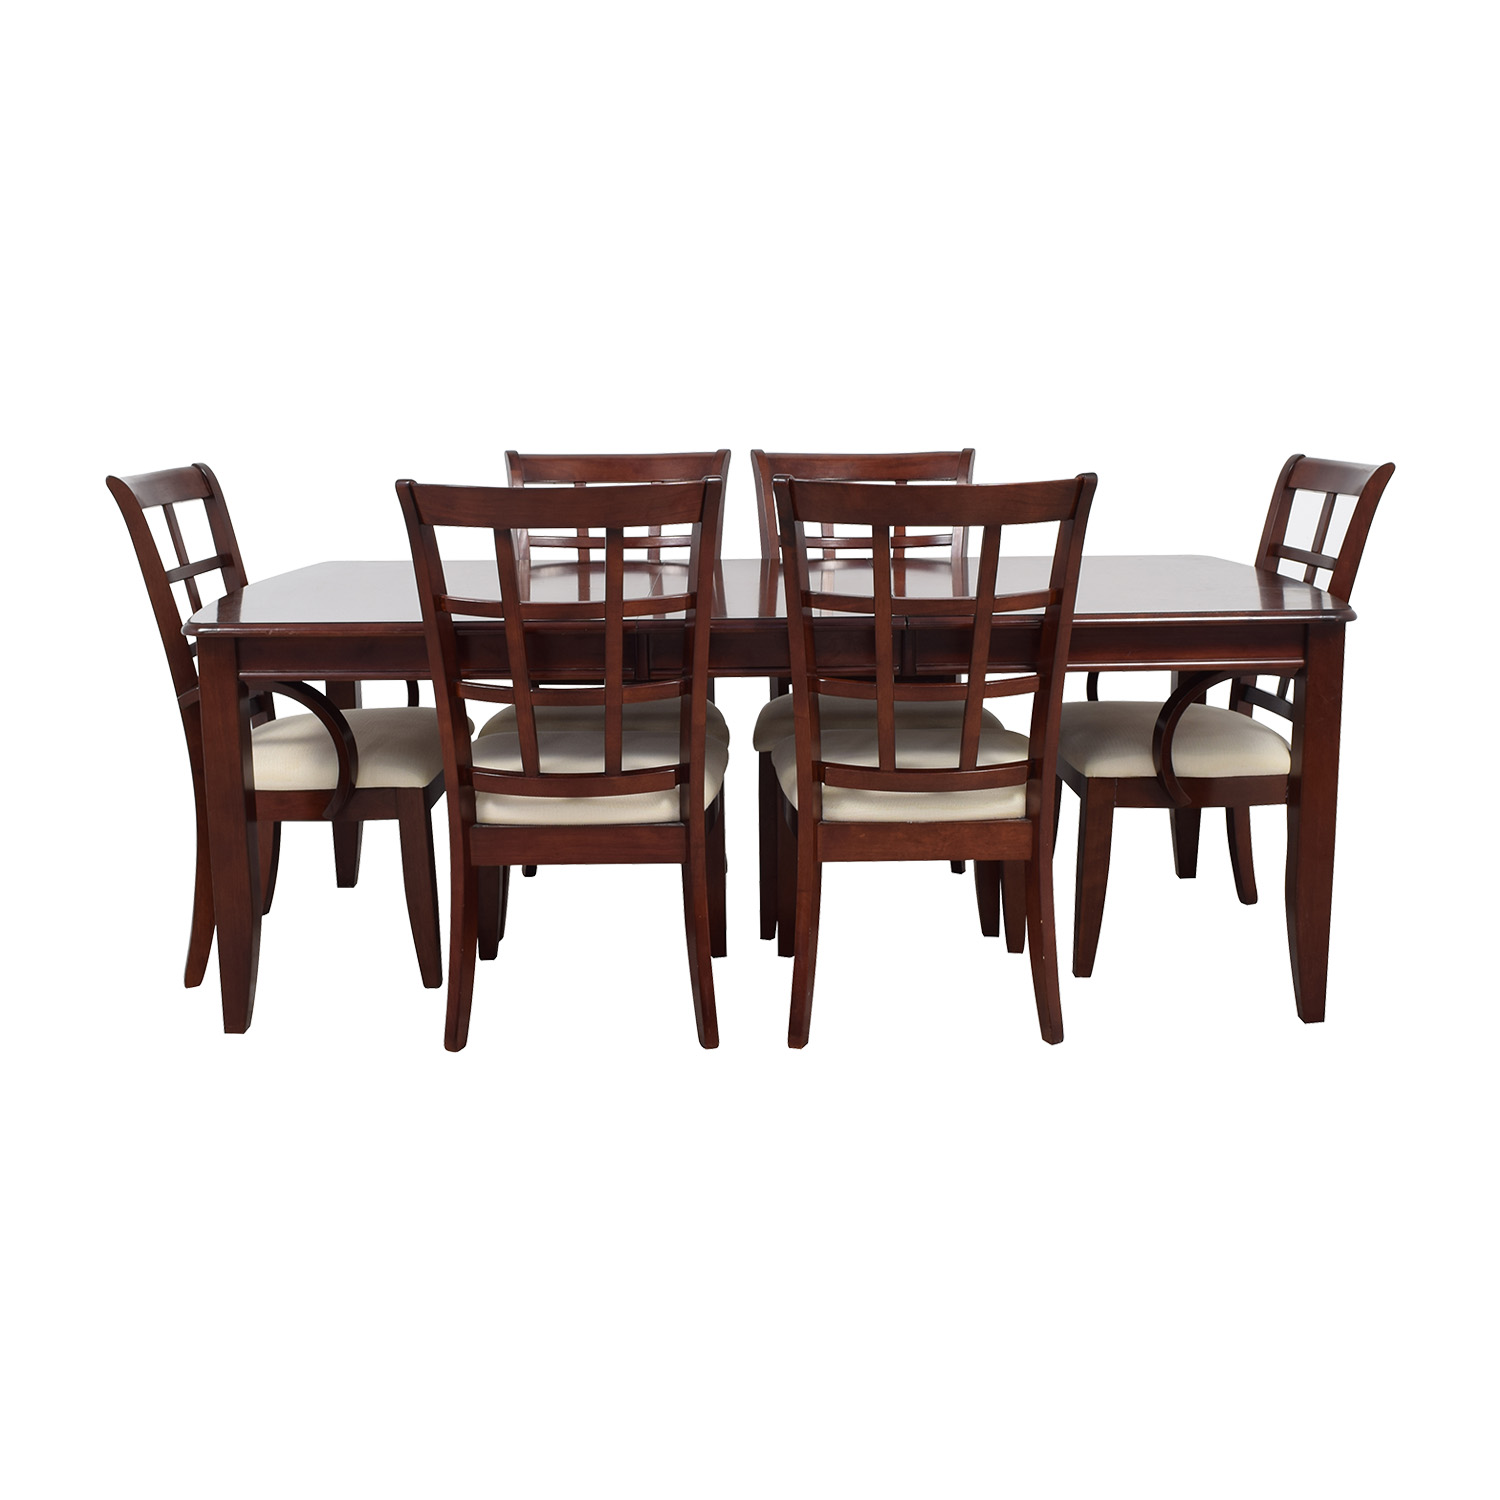 Klaussner International Klaussner International Extendable Leaf Wood Dining Set on sale